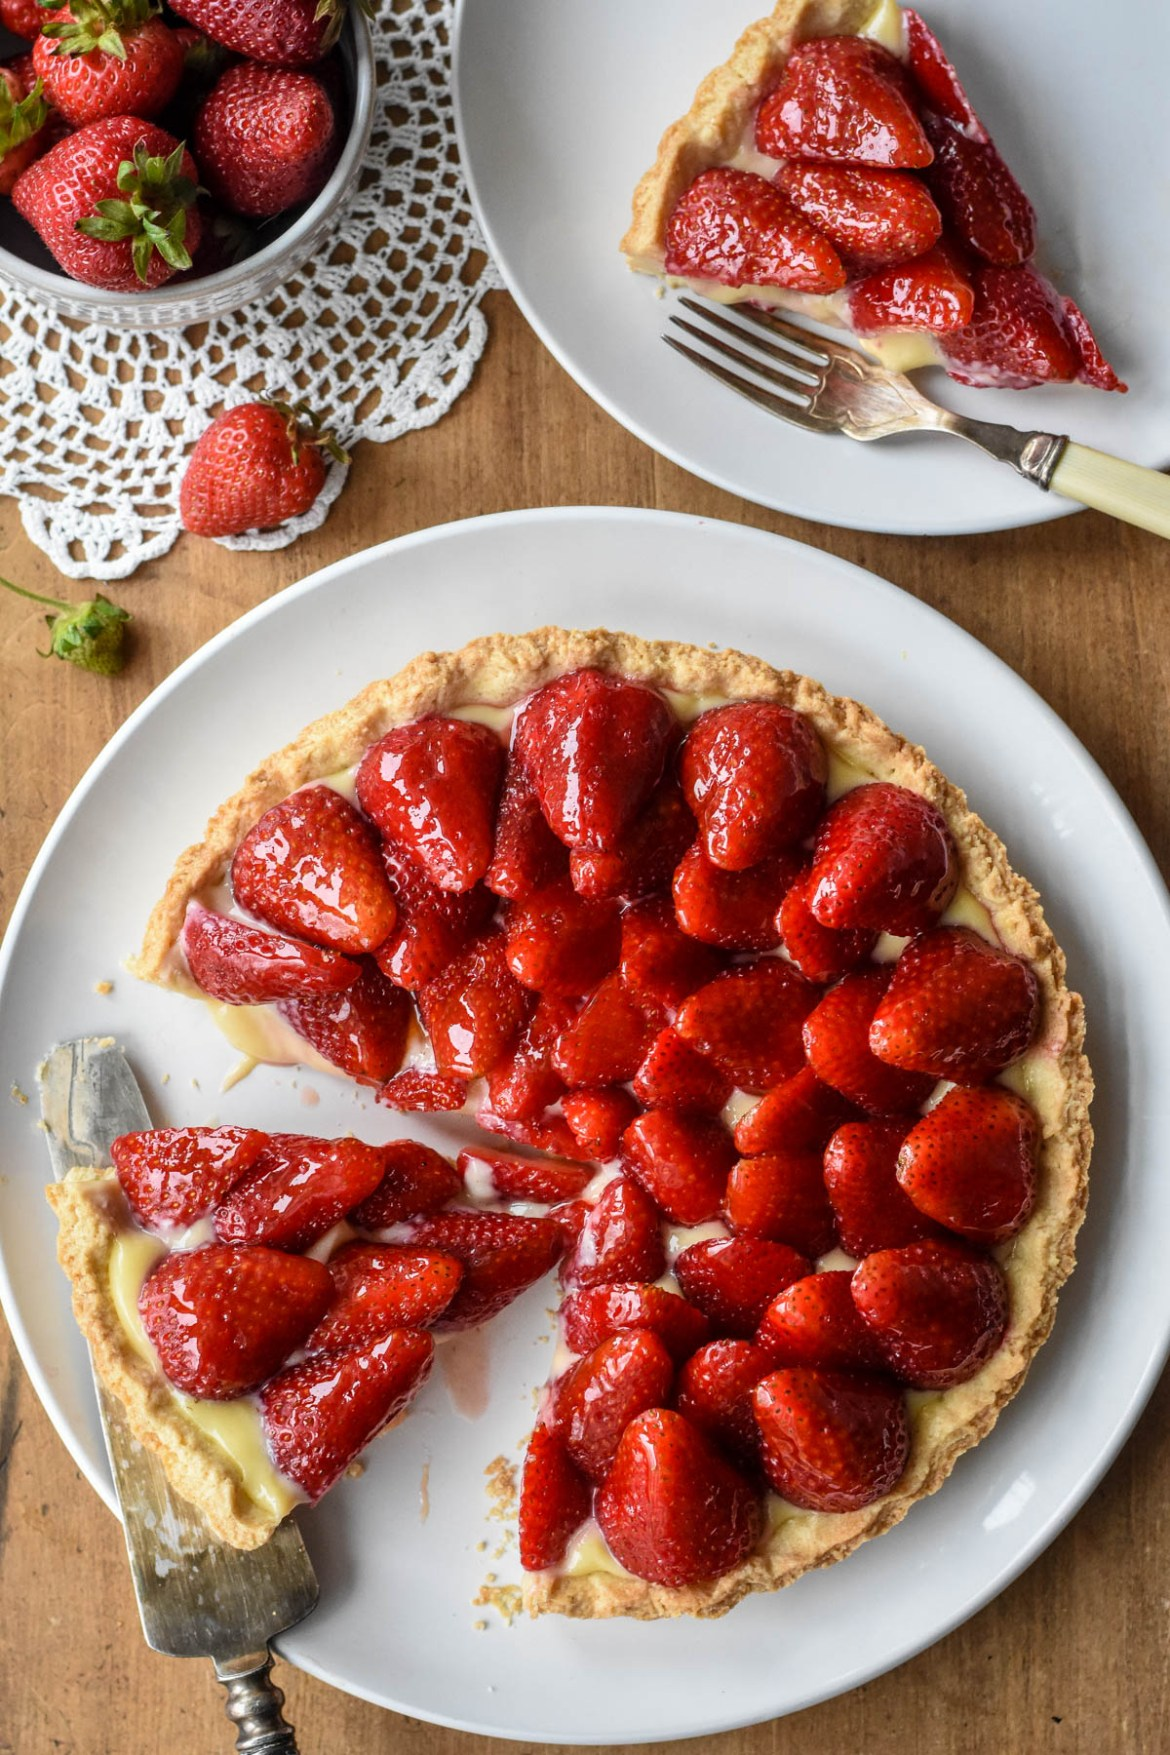 Classic French Strawberry Tart (Tarte aux Fraises)